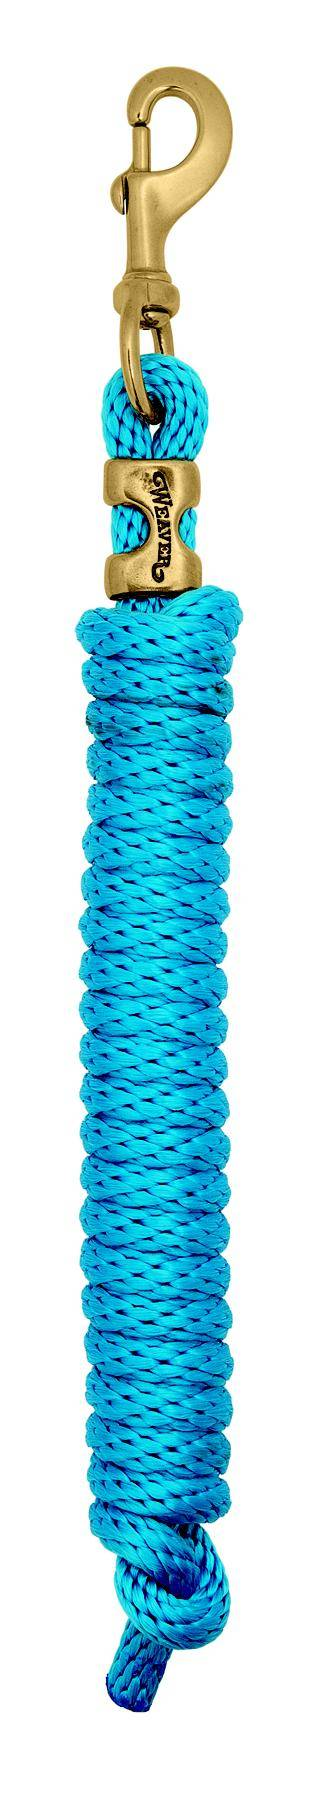 Weaver Leather Poly Lead Rope With Snap